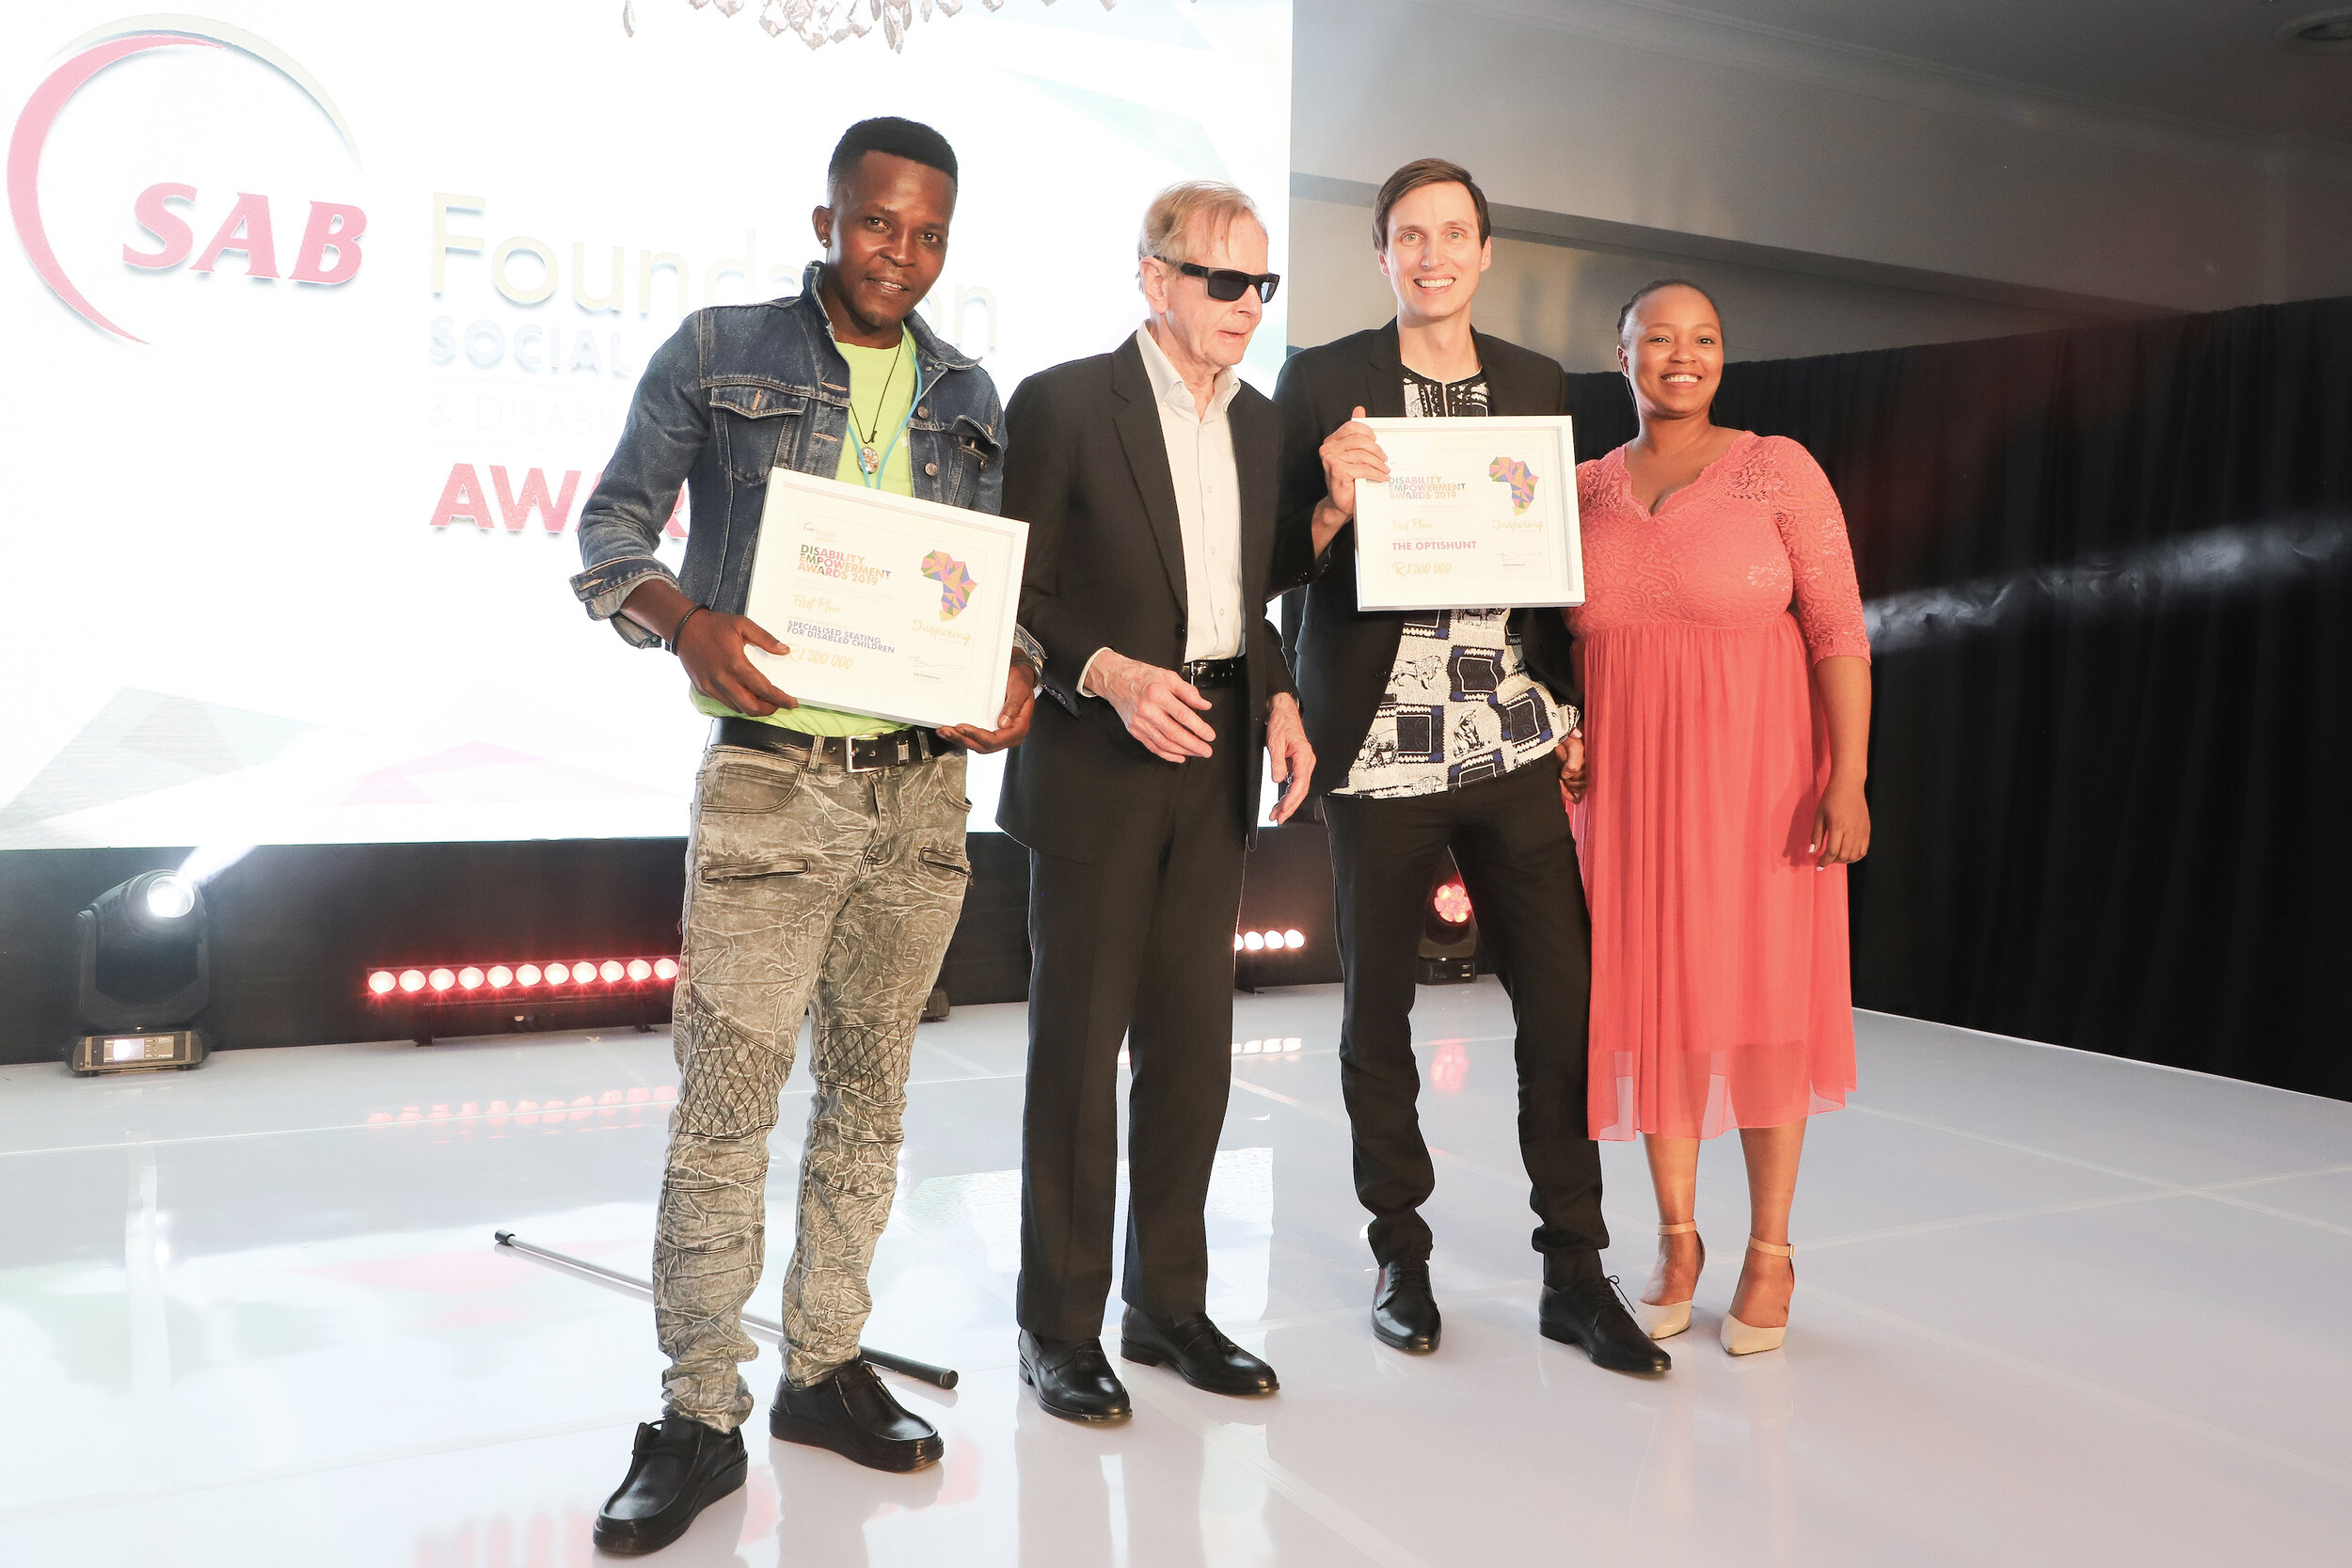 Pictured (left to right): Joint first place Disability Empowerment Awards and People's Choice awards winner, Mpho Mohlolo, developed Specialised Seating for Disabled Children; SAB Foundation External Trustee, Dr William Rowland; joint first place Disability Empowerment Awards winner, Dr Daemon McClunan with The OptiShunt; and SAB Foundation Social Innovation Project Manager, Ntandokazi Nodada